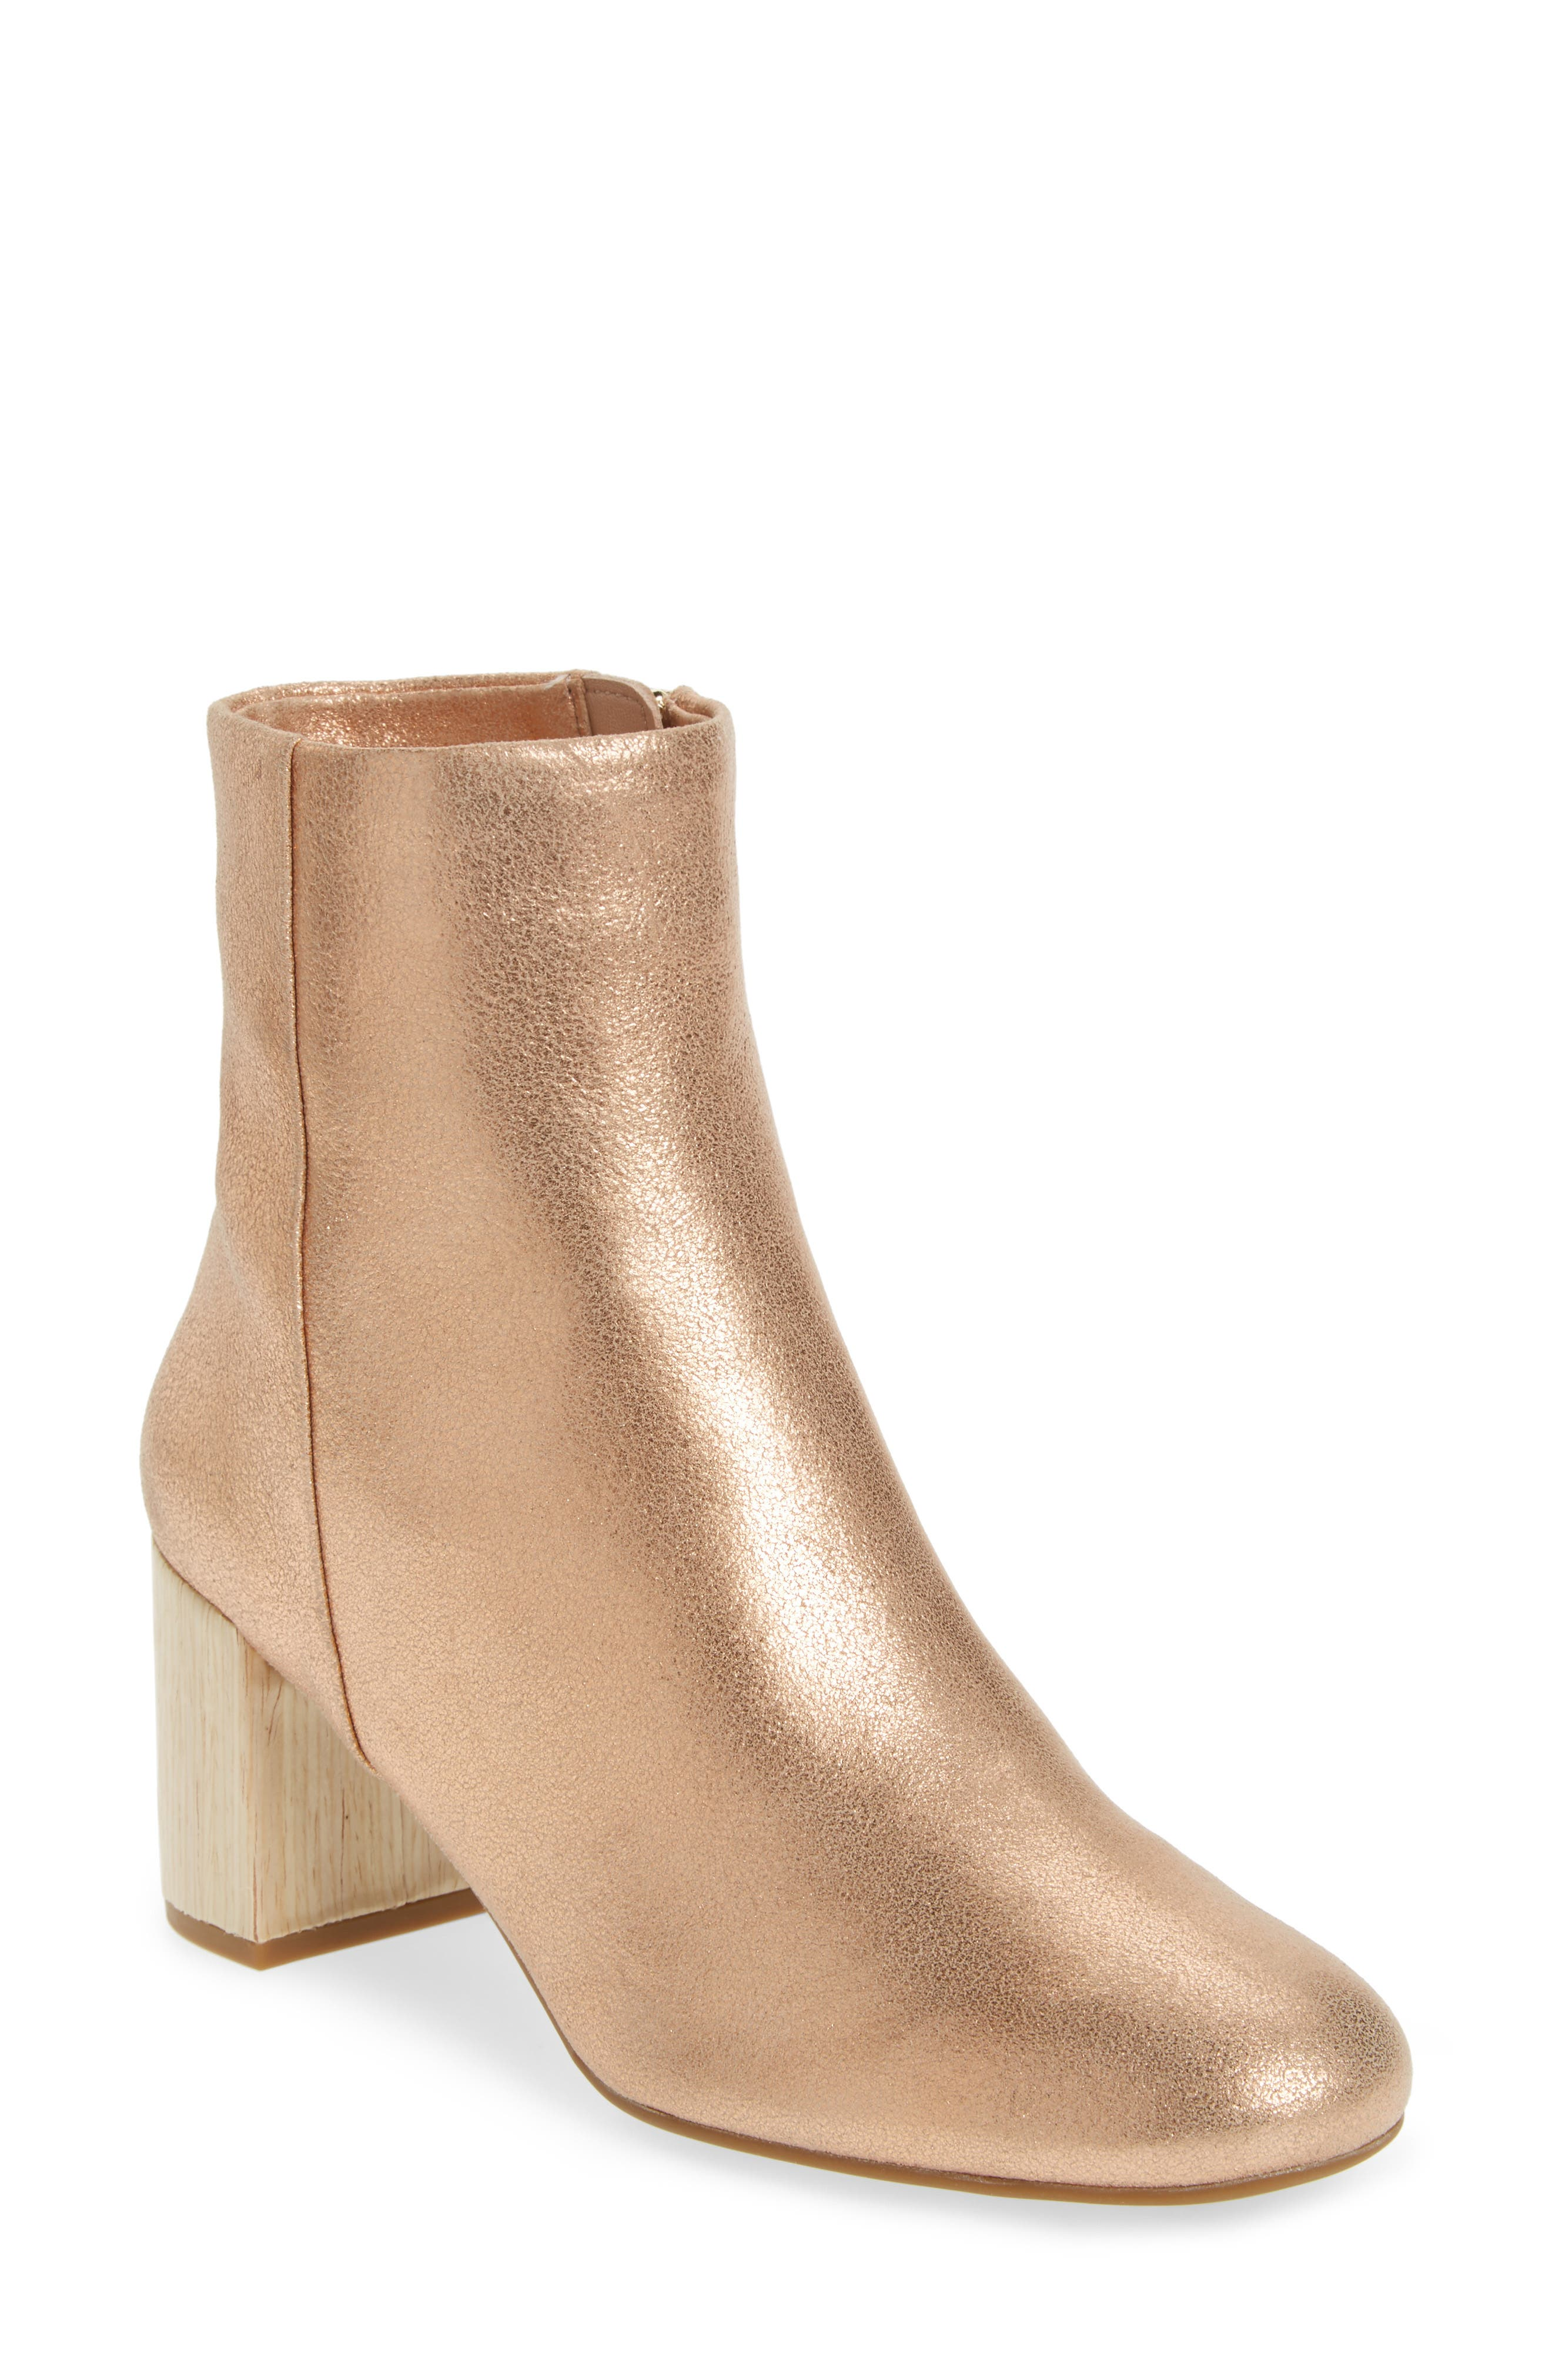 Cassidy Block Heel Bootie,                             Main thumbnail 1, color,                             Rose Gold Leather